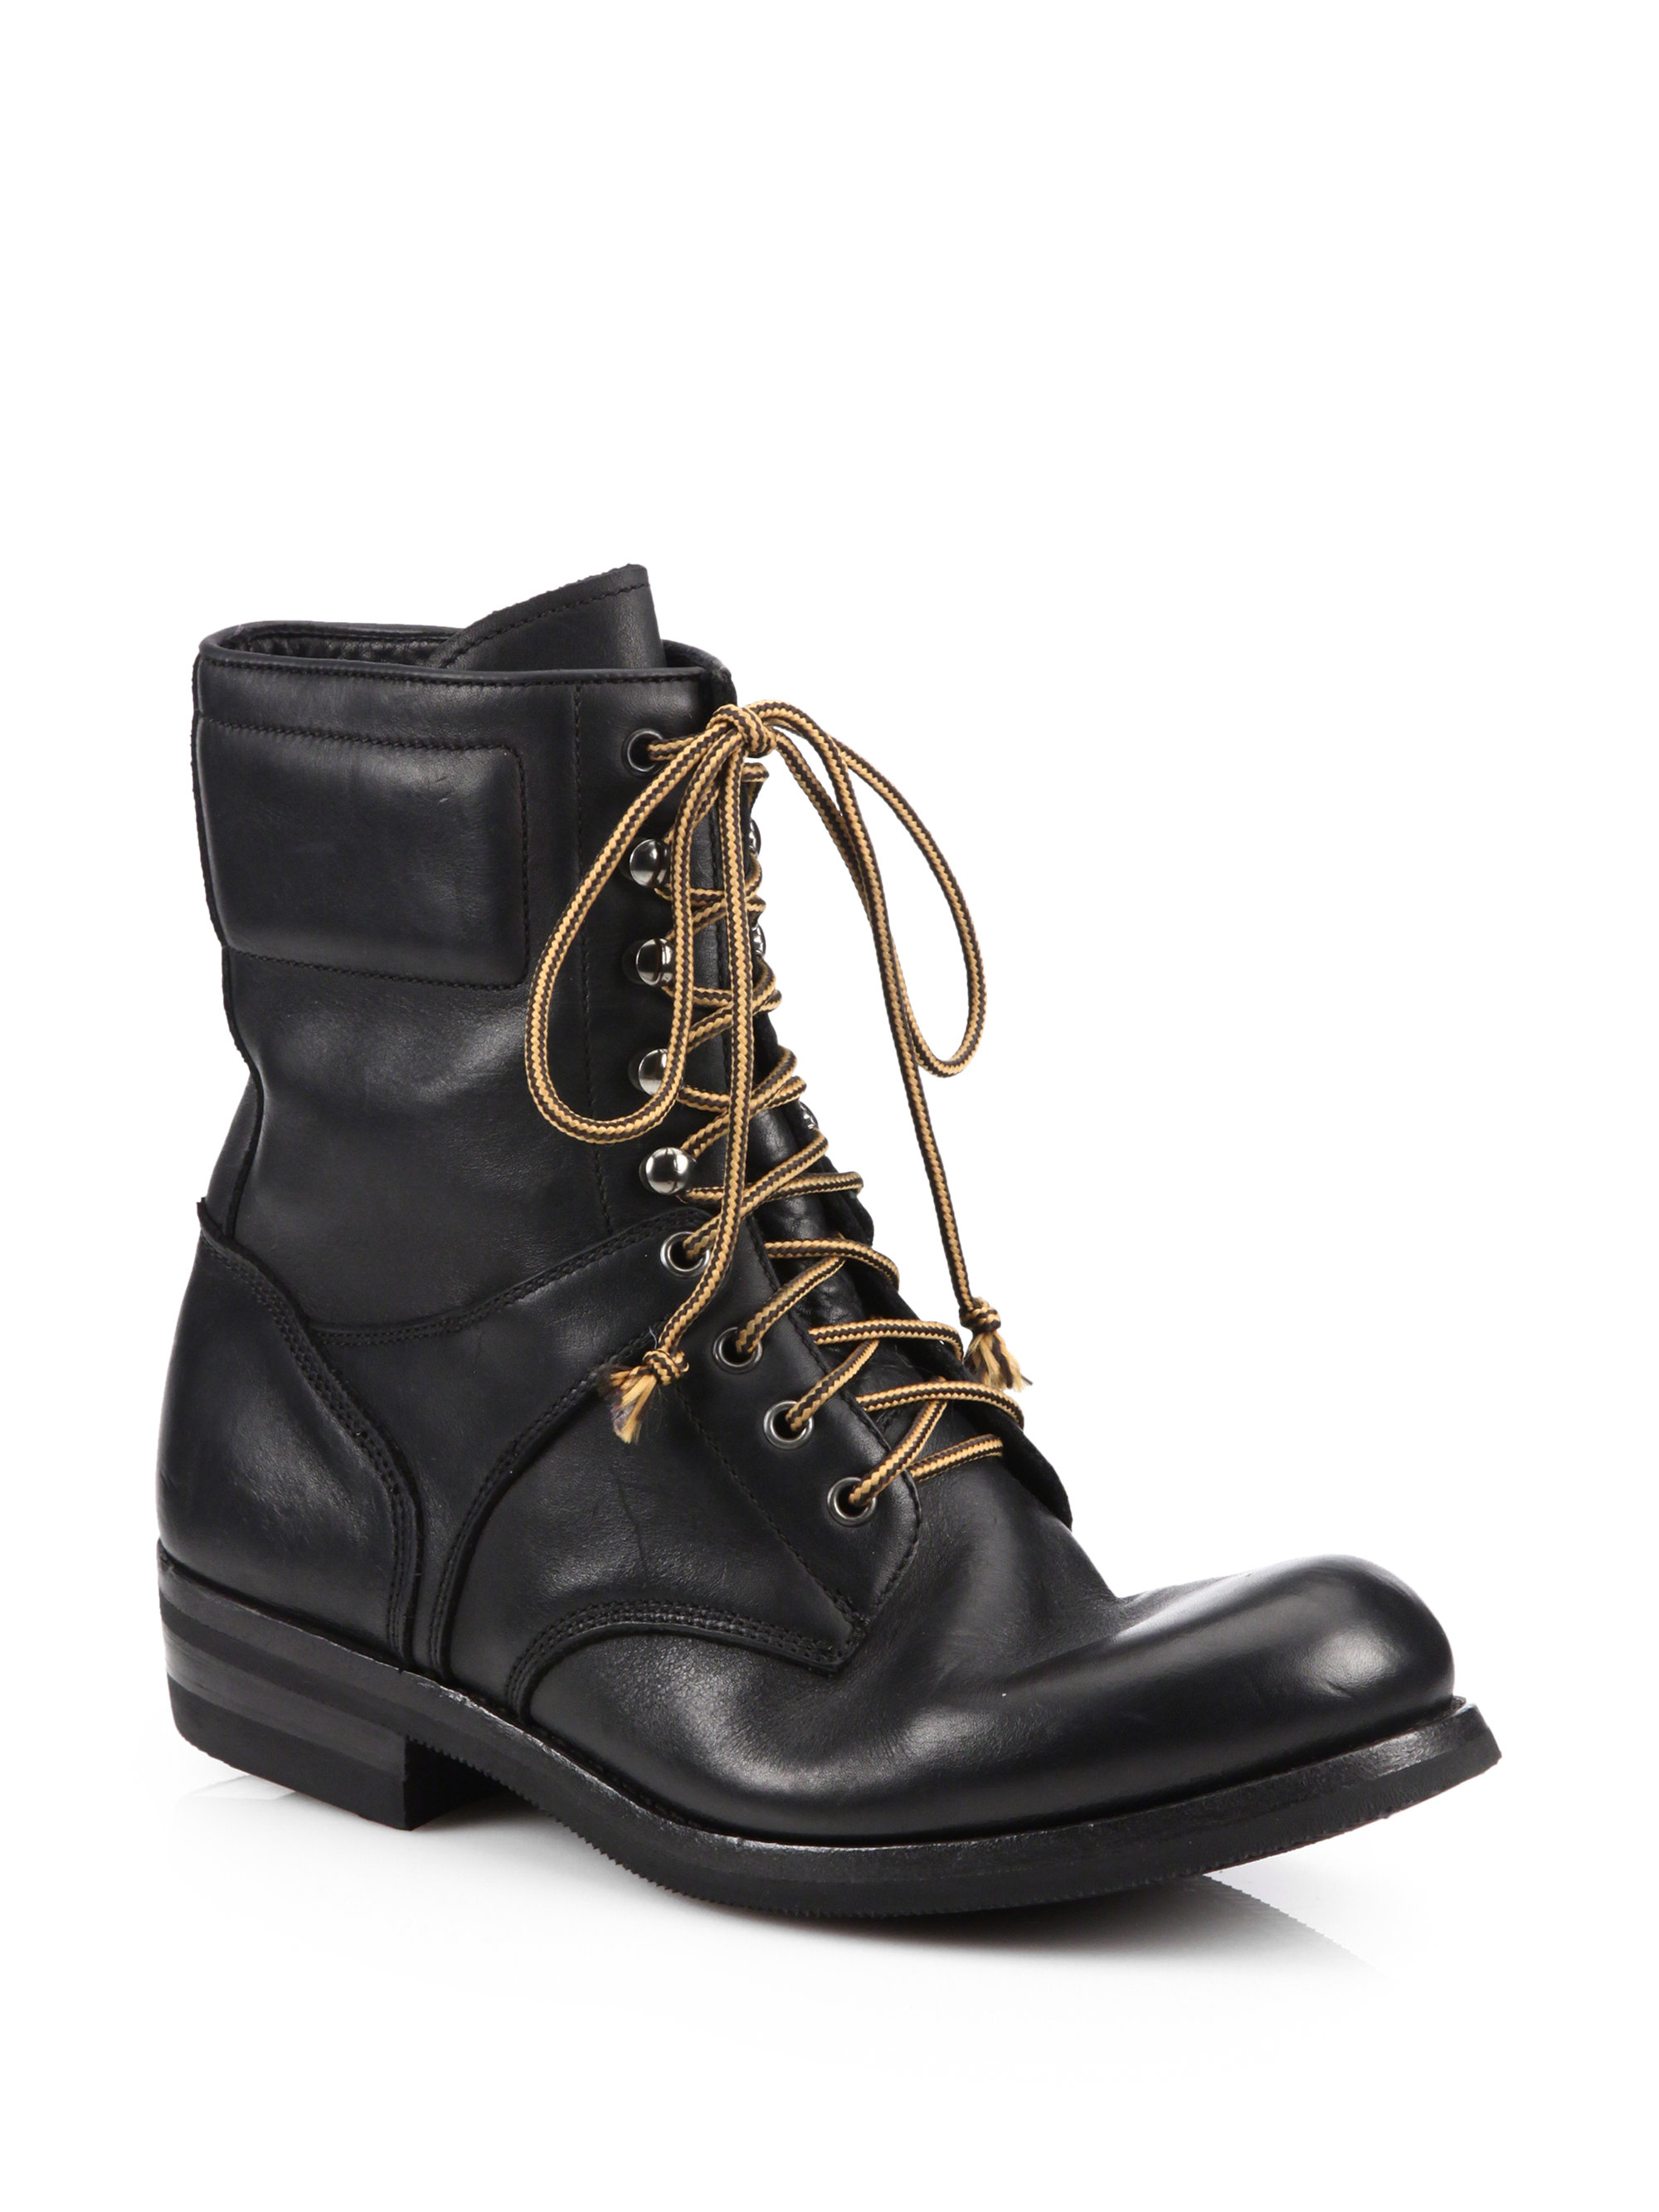 ralph gavin distressed leather lace up boots in